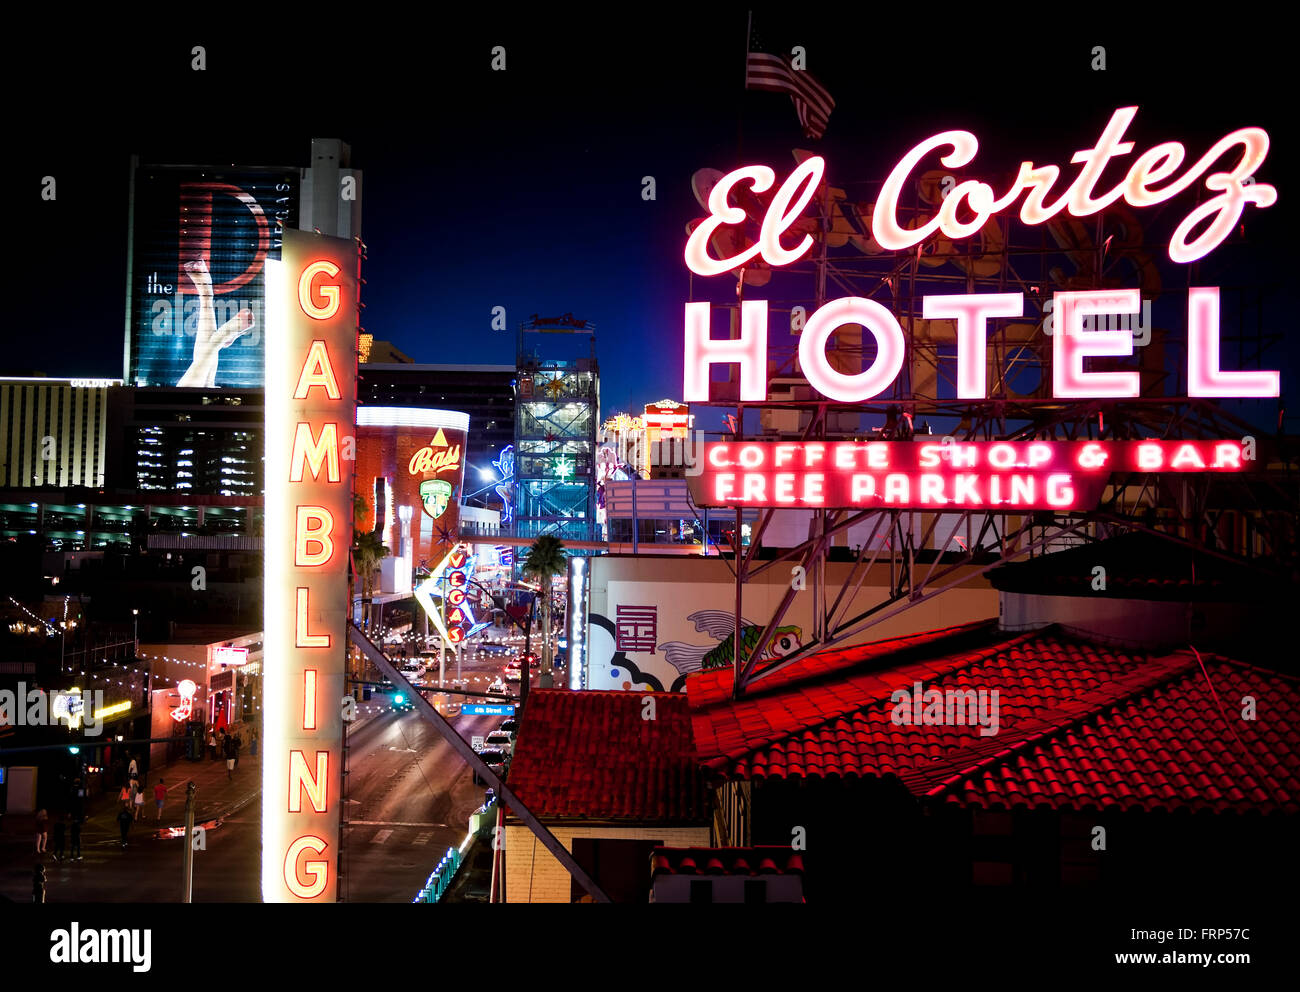 A Sign For The El Cortez Hotel And Casino At Night In The Fremont